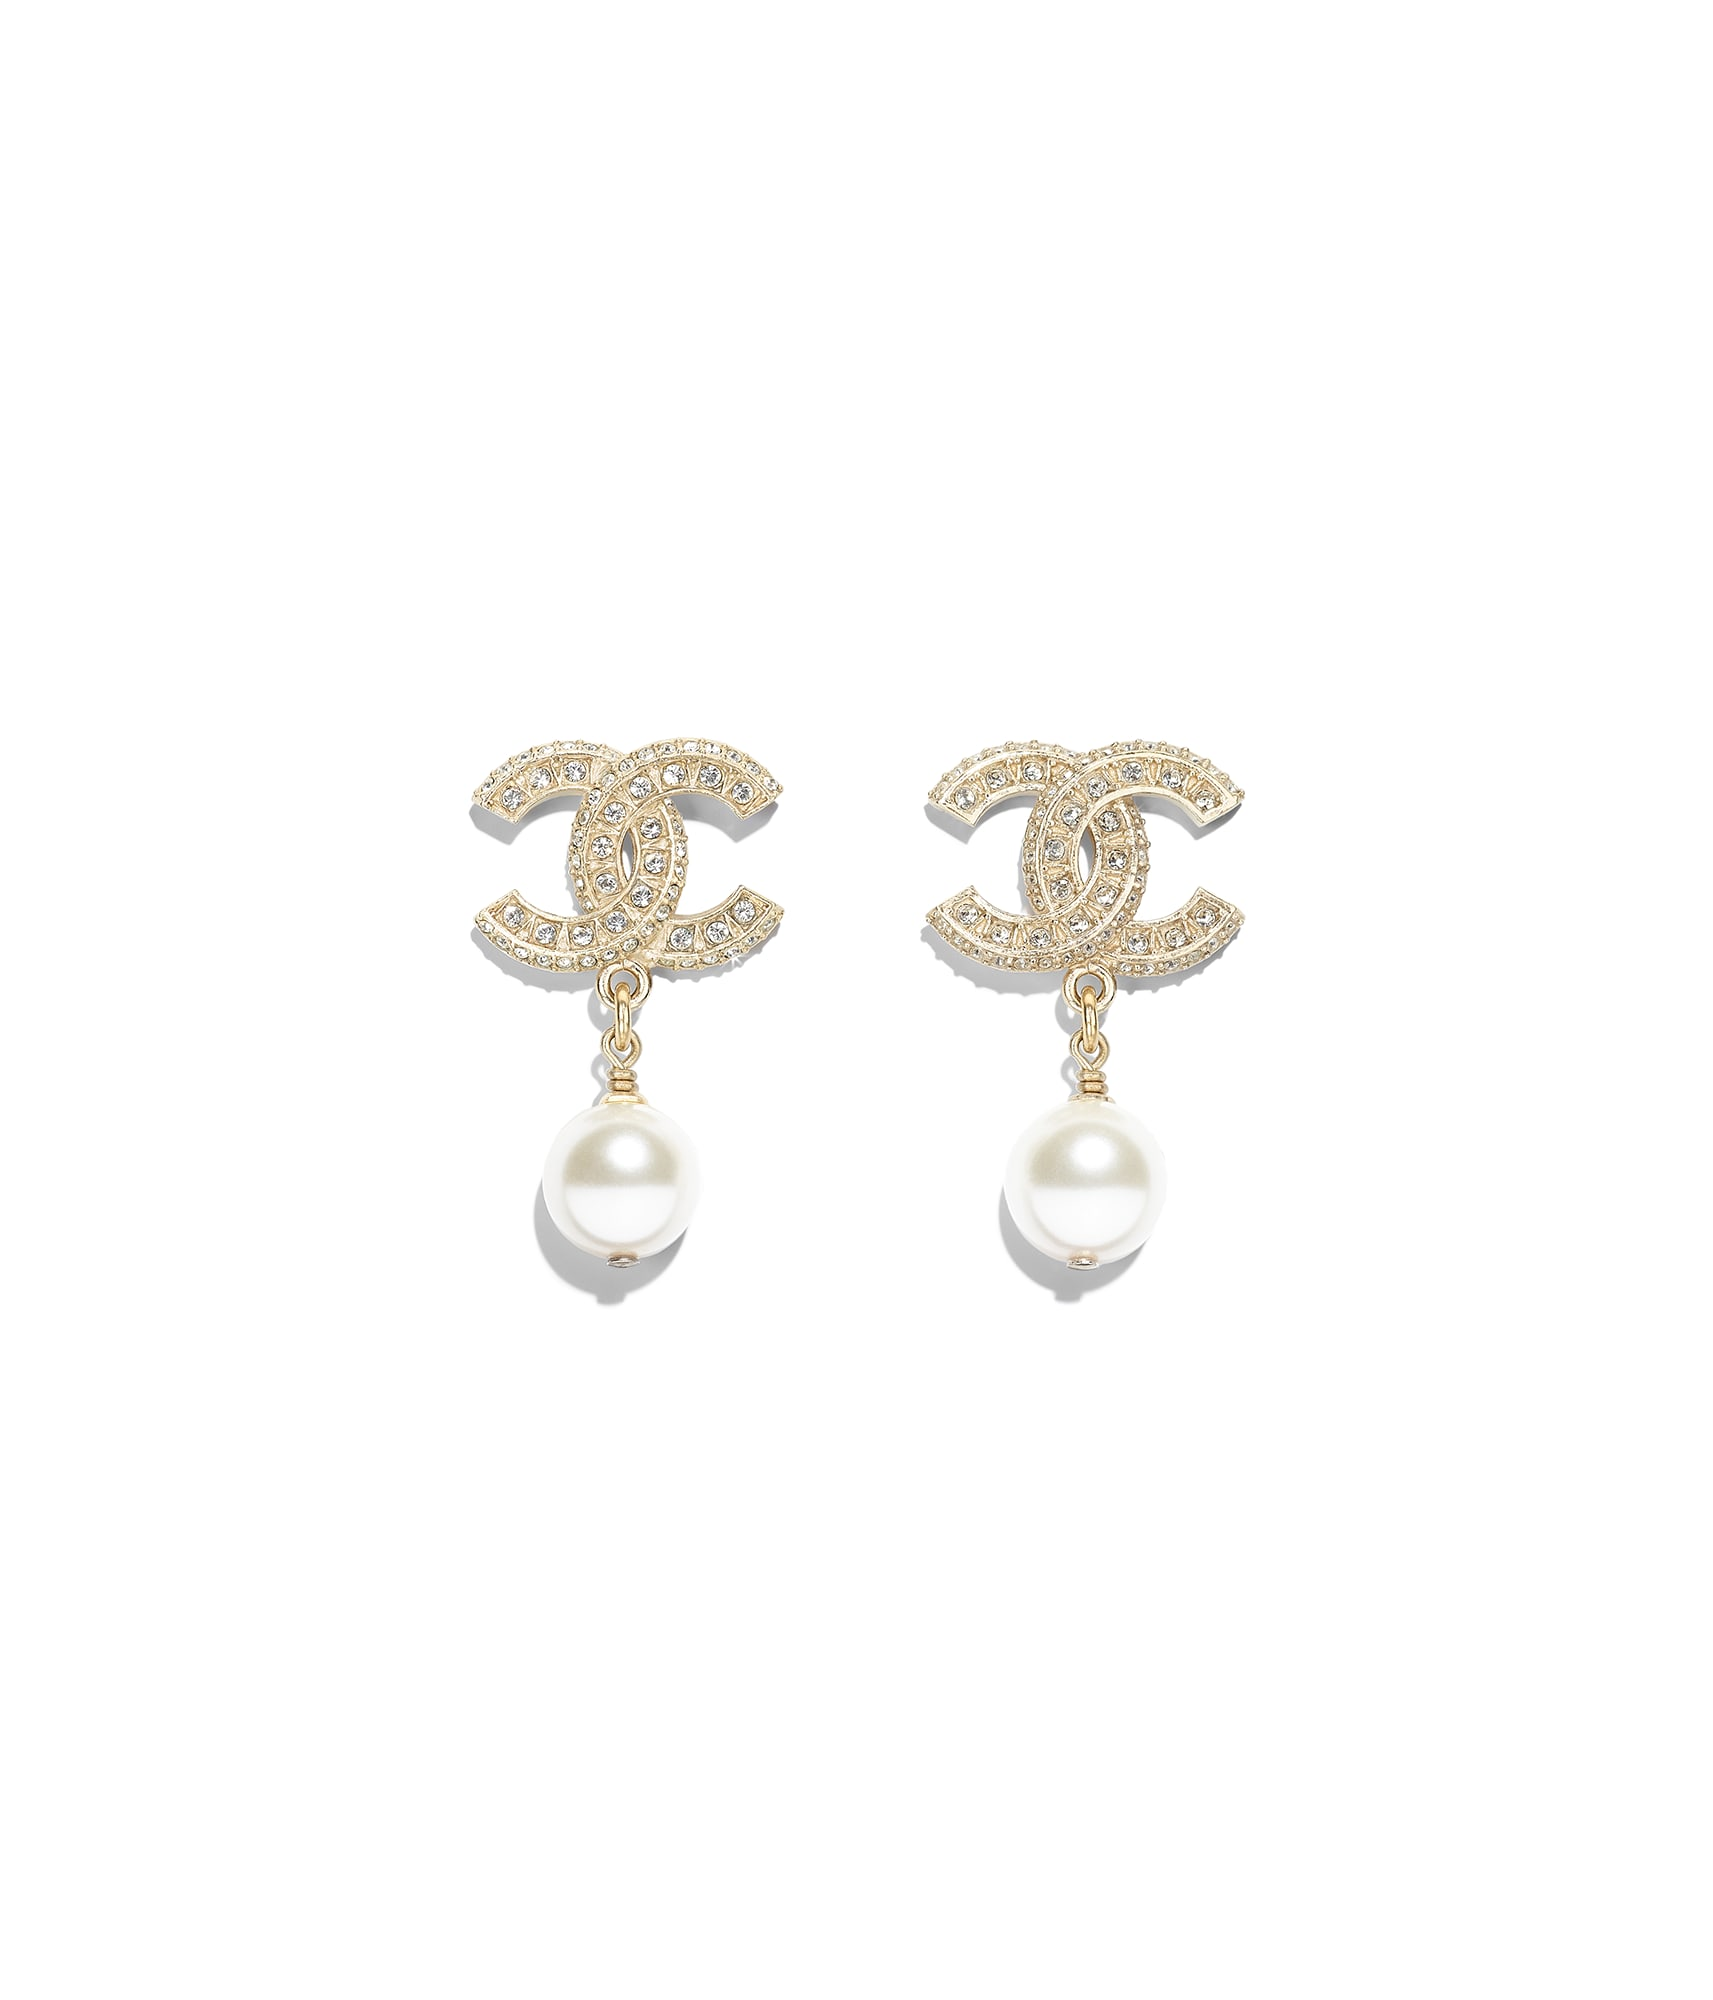 Earrings Metal Gl Pearls Resin Diamantés Gold Pearly White Crystal Chanel